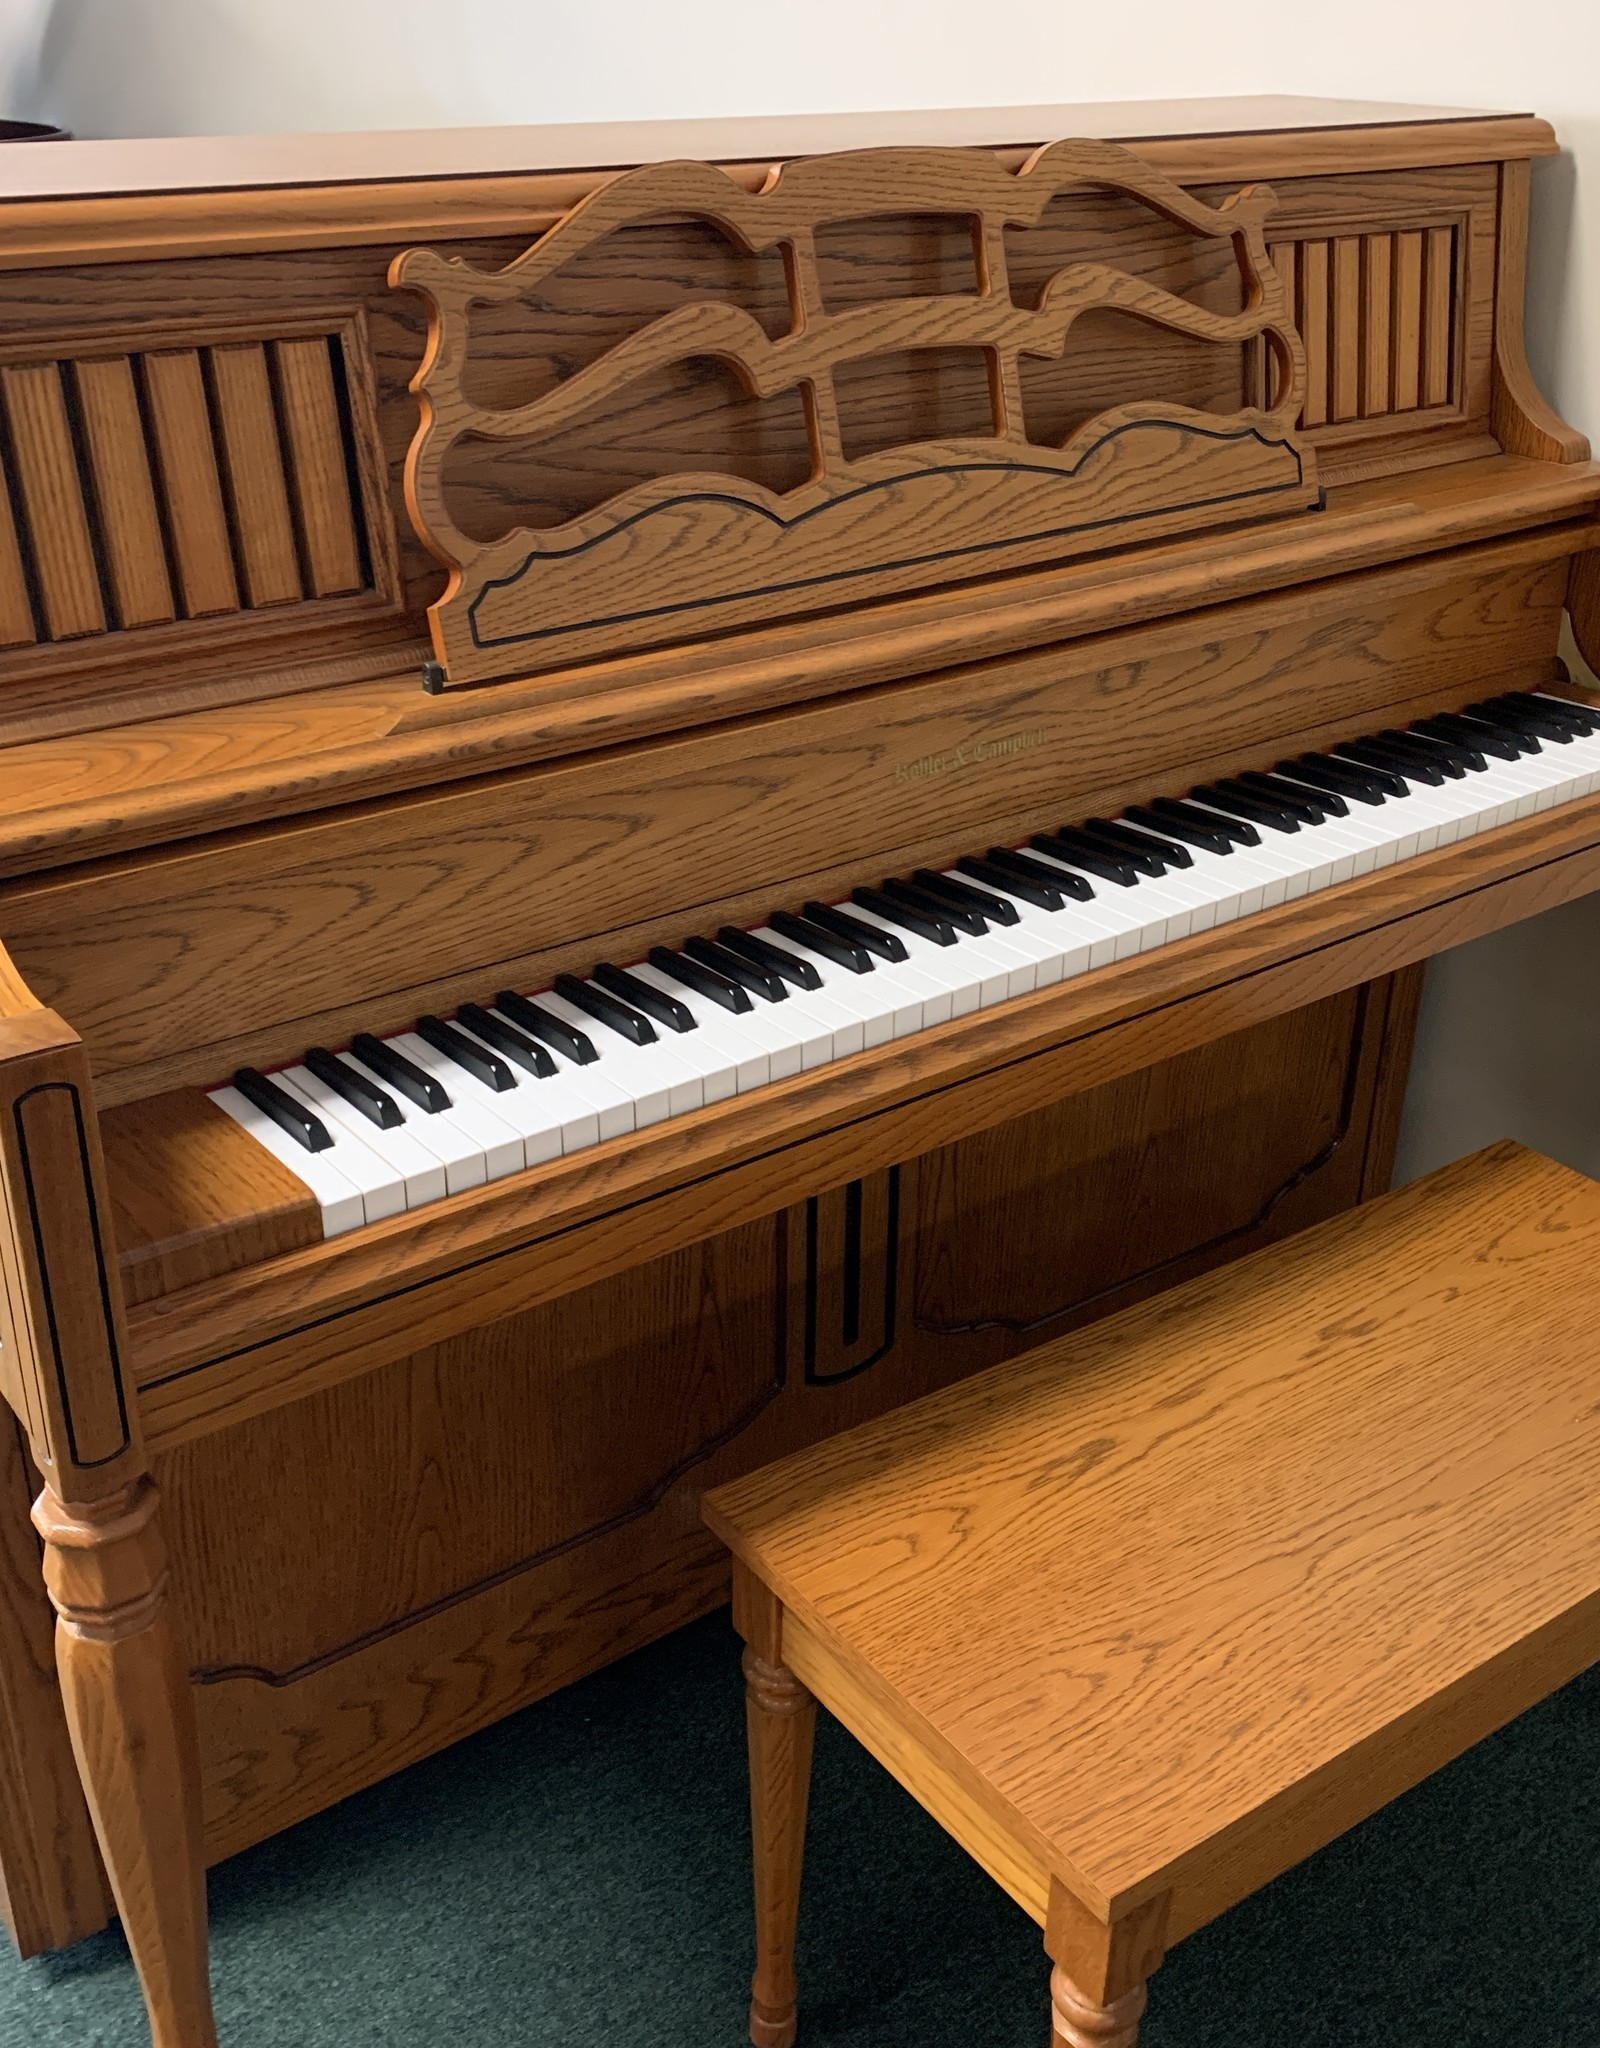 Kohler & Campbell Kohler & Campbell KC-118 Console Piano (Pre-owned)